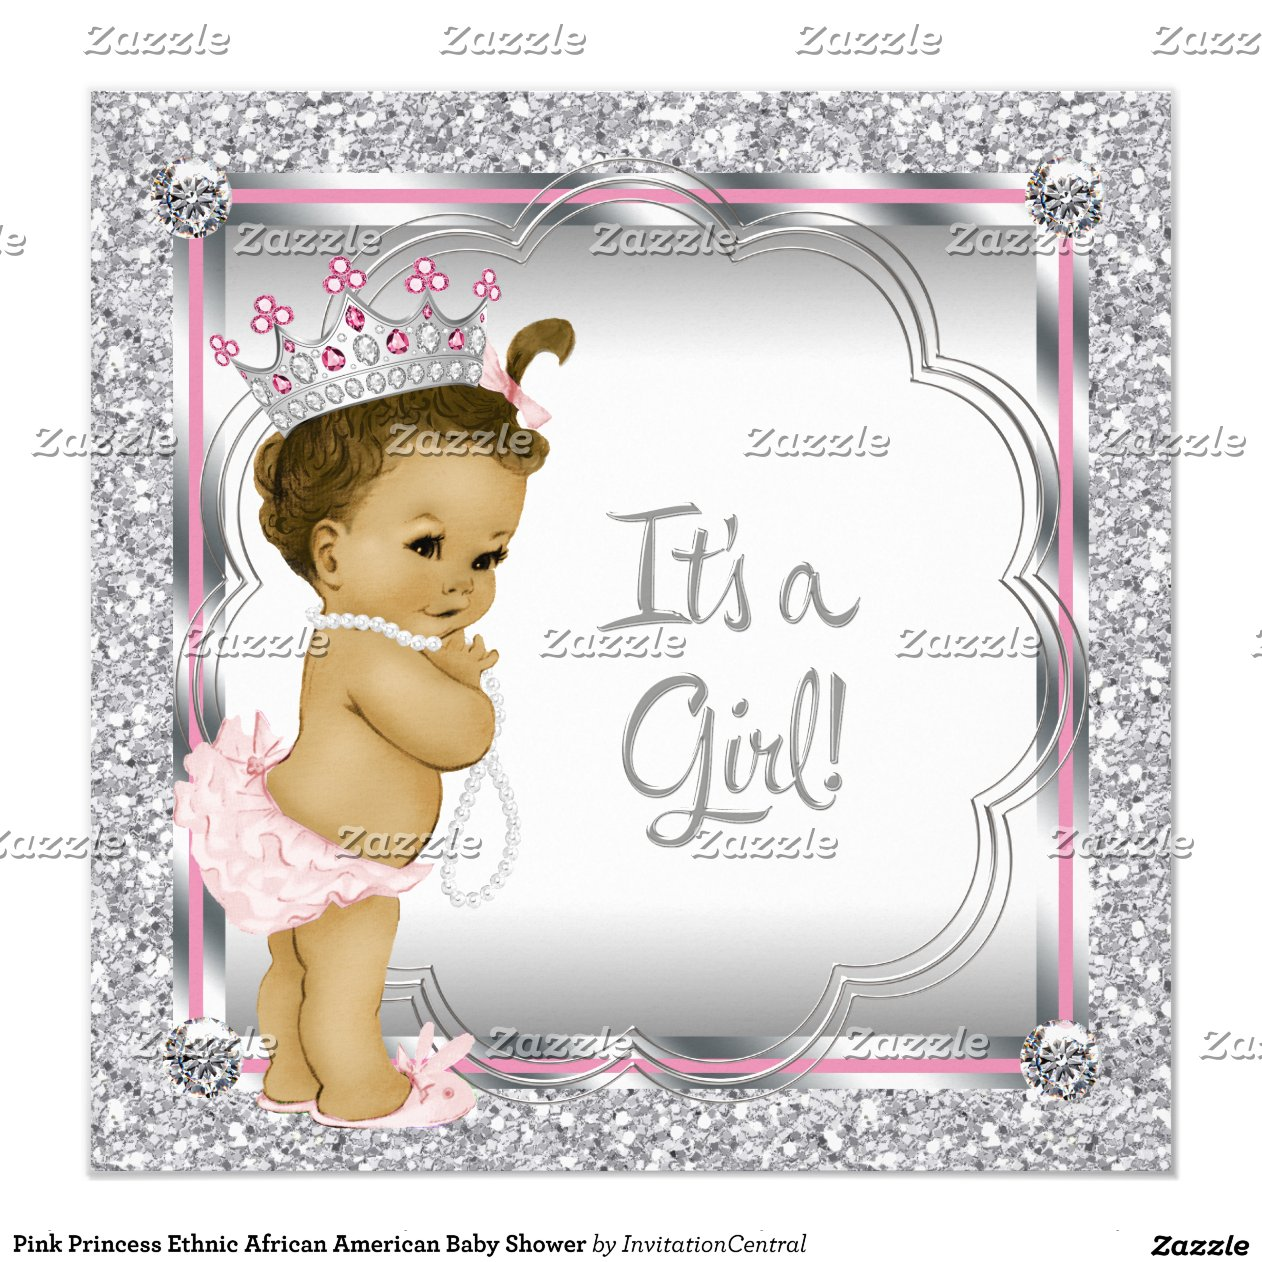 Ethnic Baby Shower Invitations was great invitations ideas